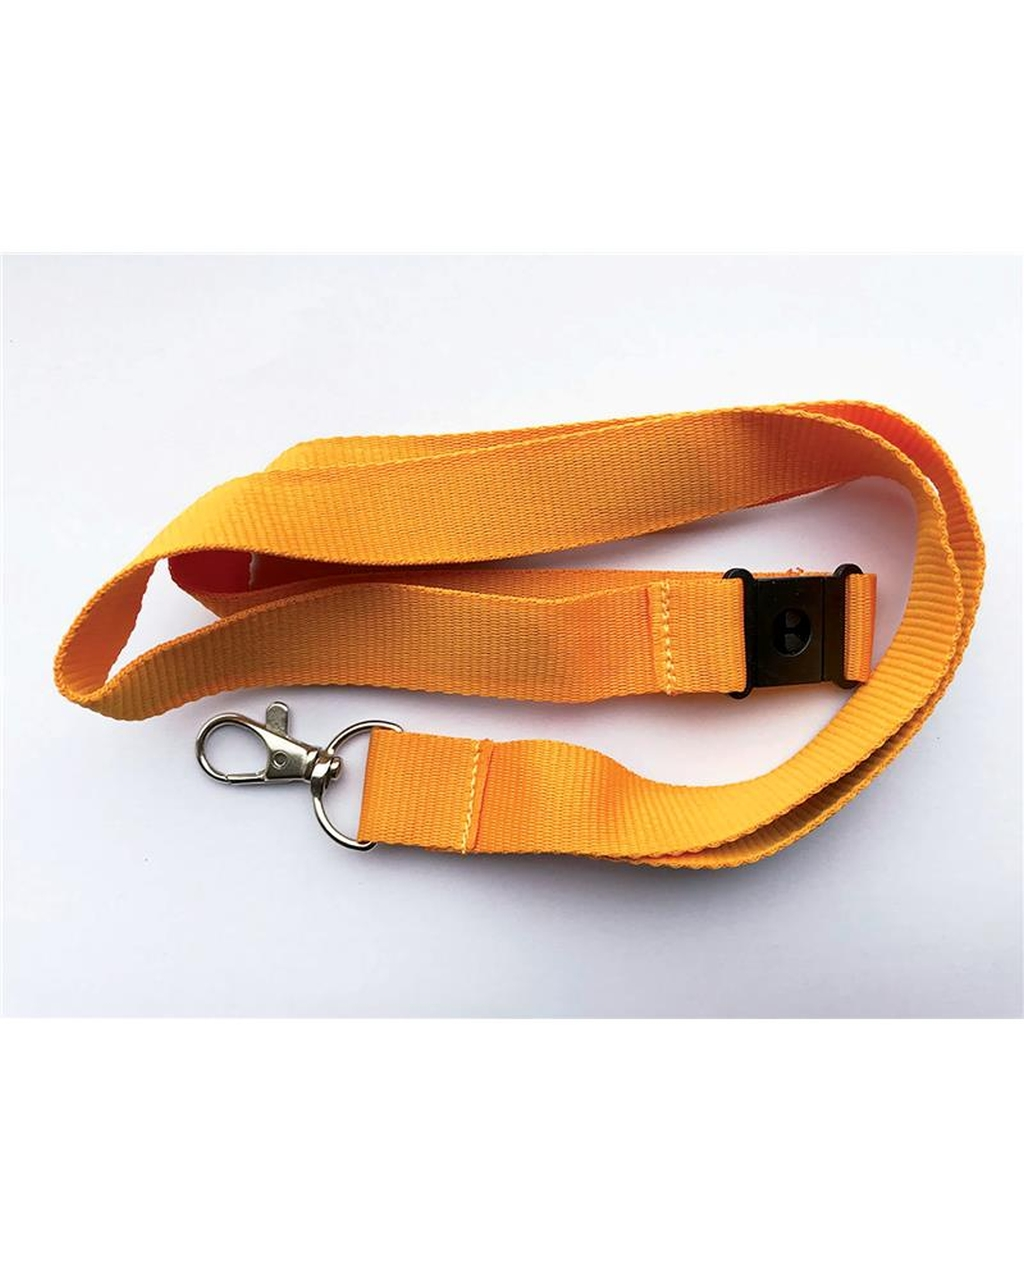 20Mm Lanyards Plain Orangepack Of 25